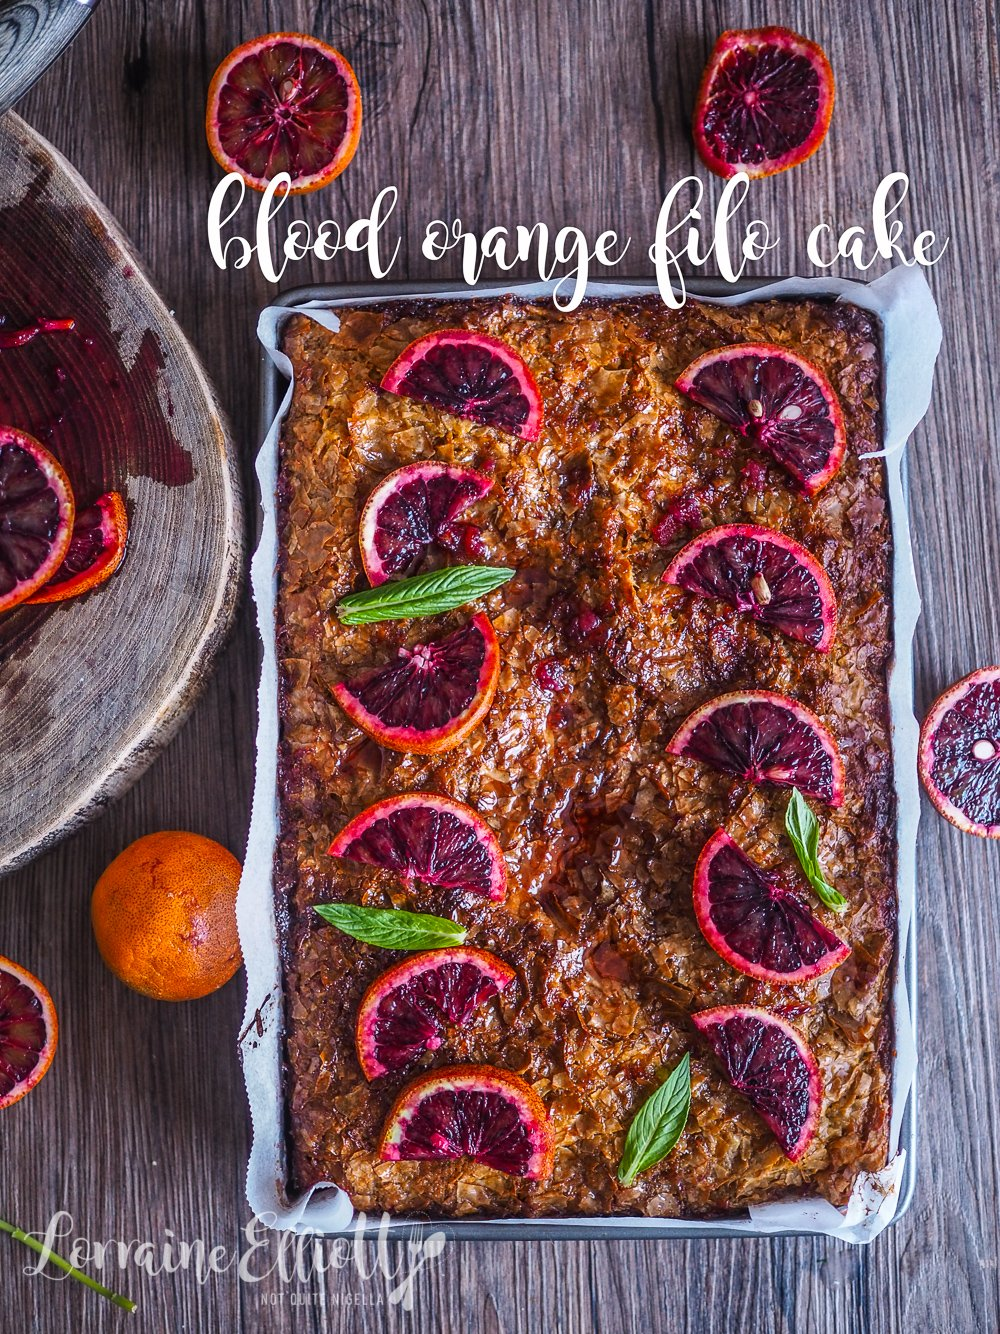 Portokalopita Greek Filo Blood Orange Cake